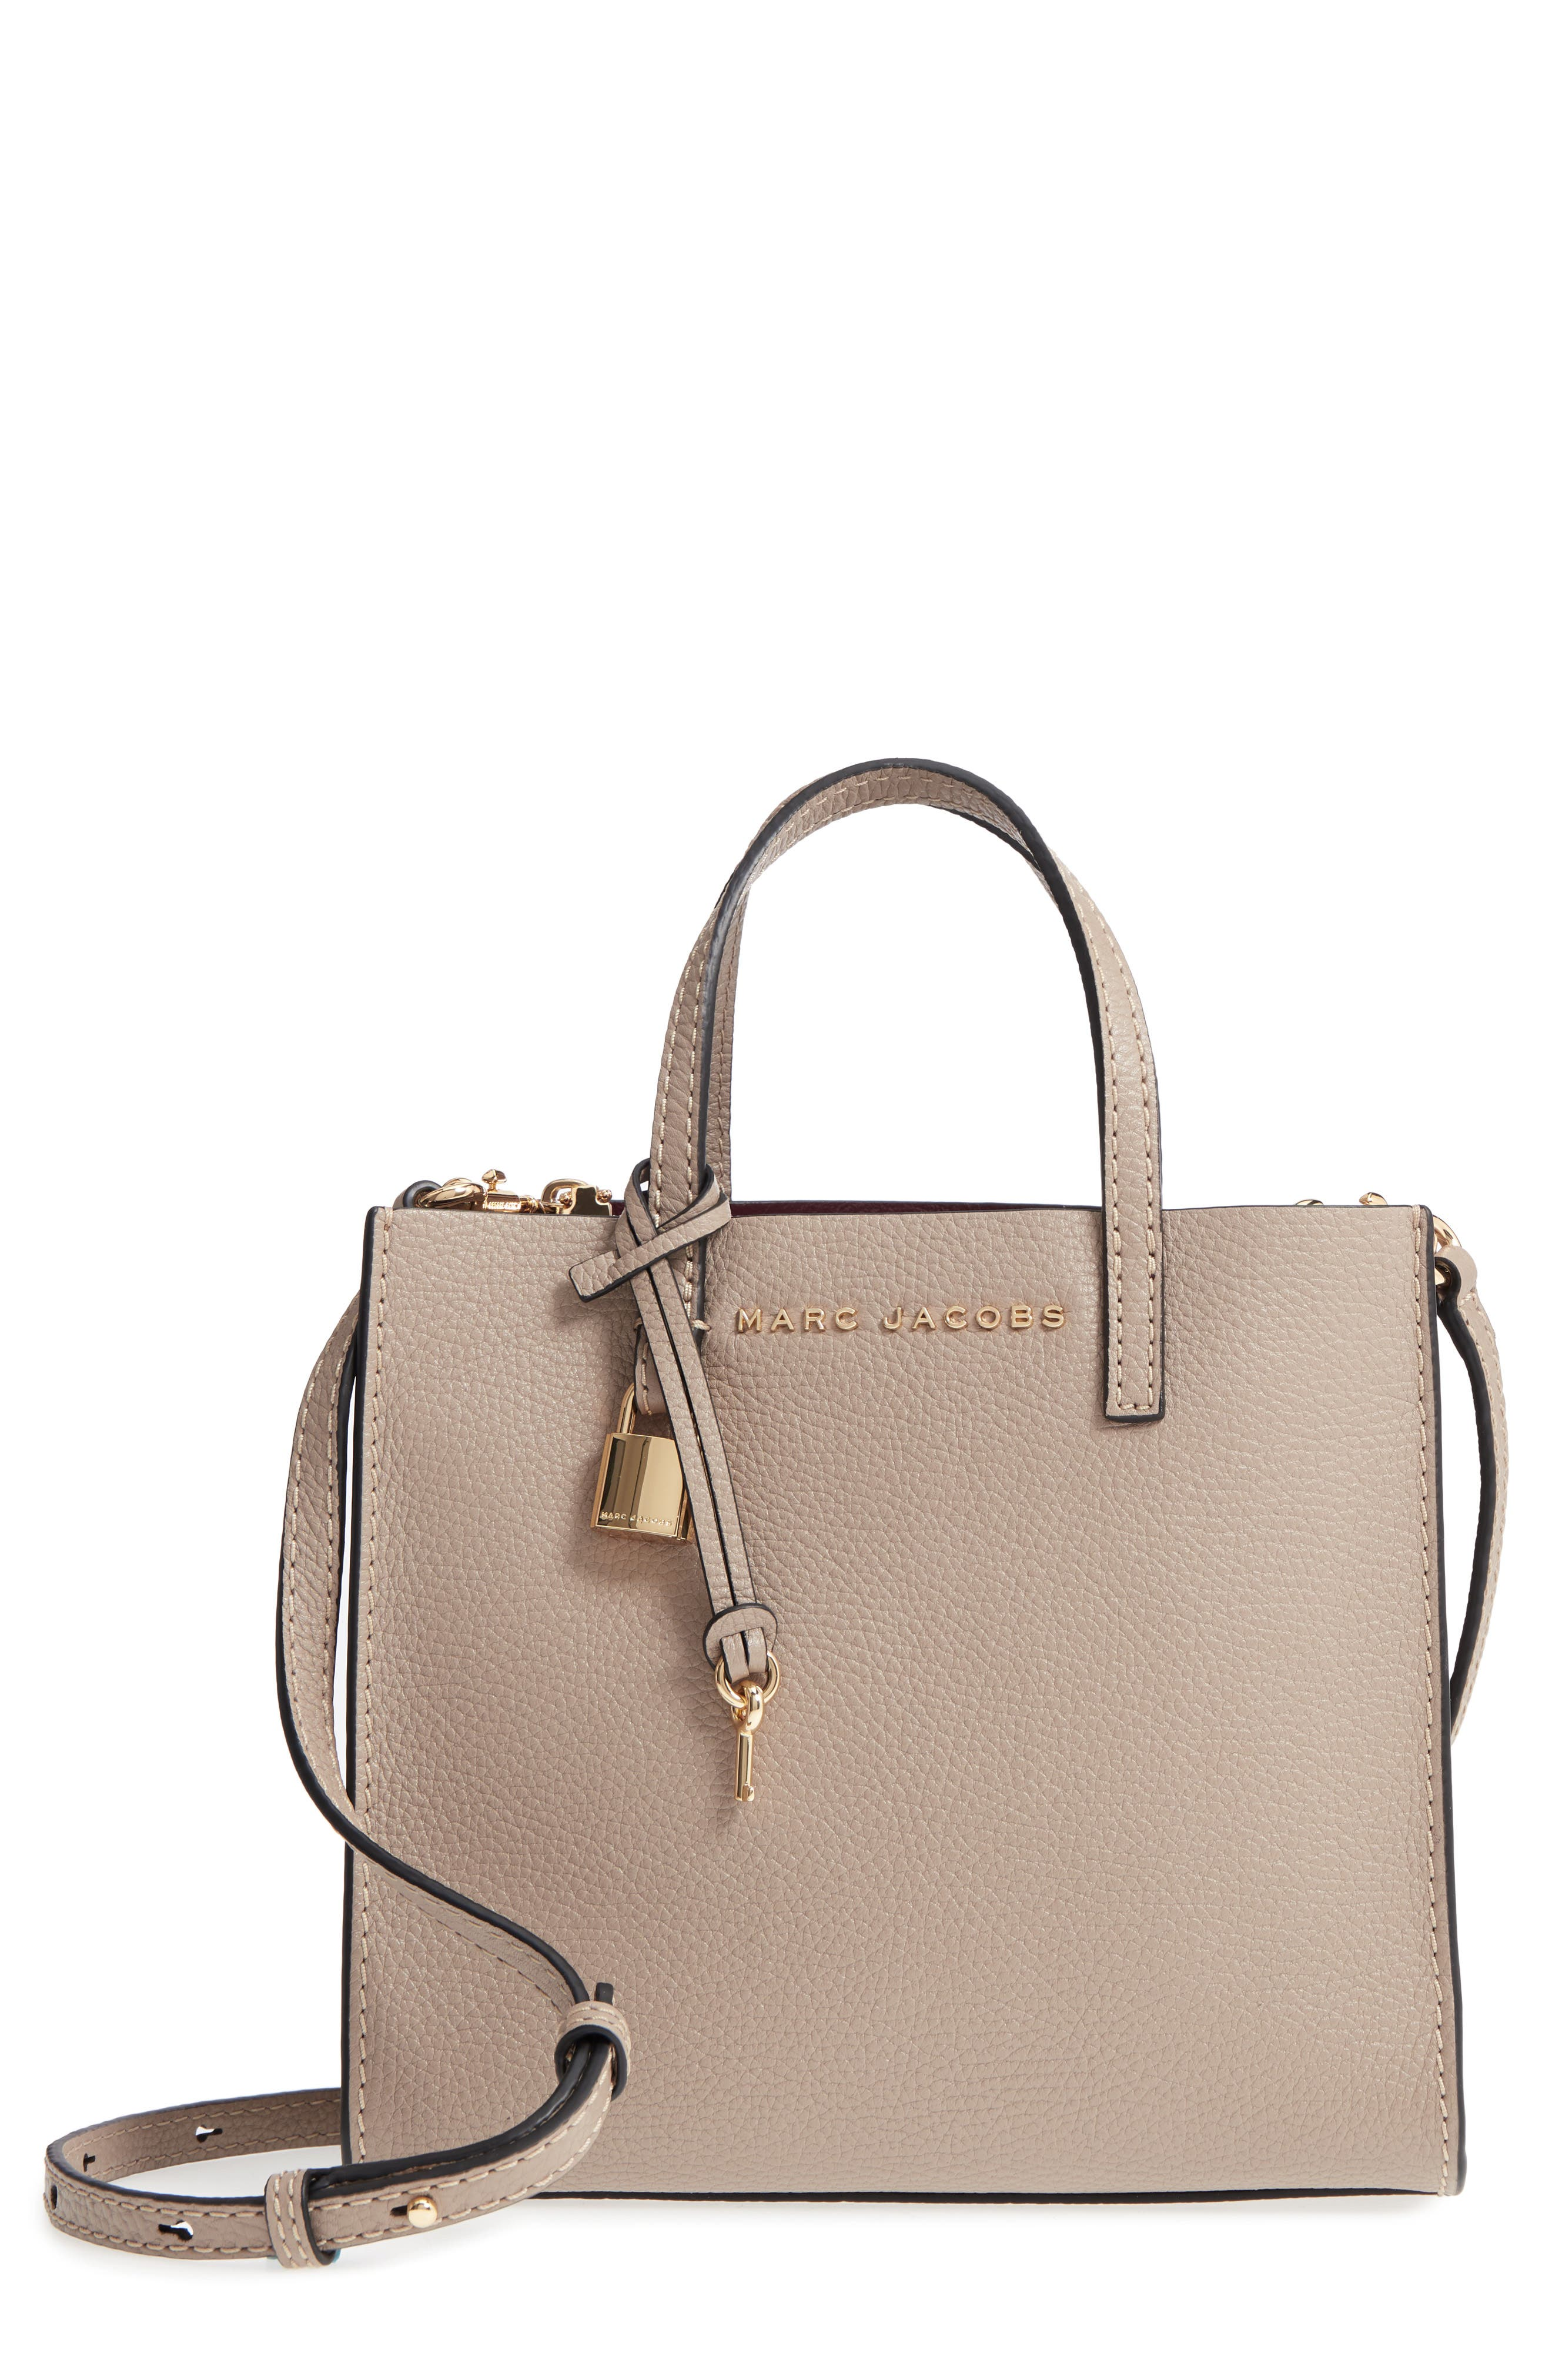 The Grind Mini Colorblock Leather Tote - Beige in Light Slate